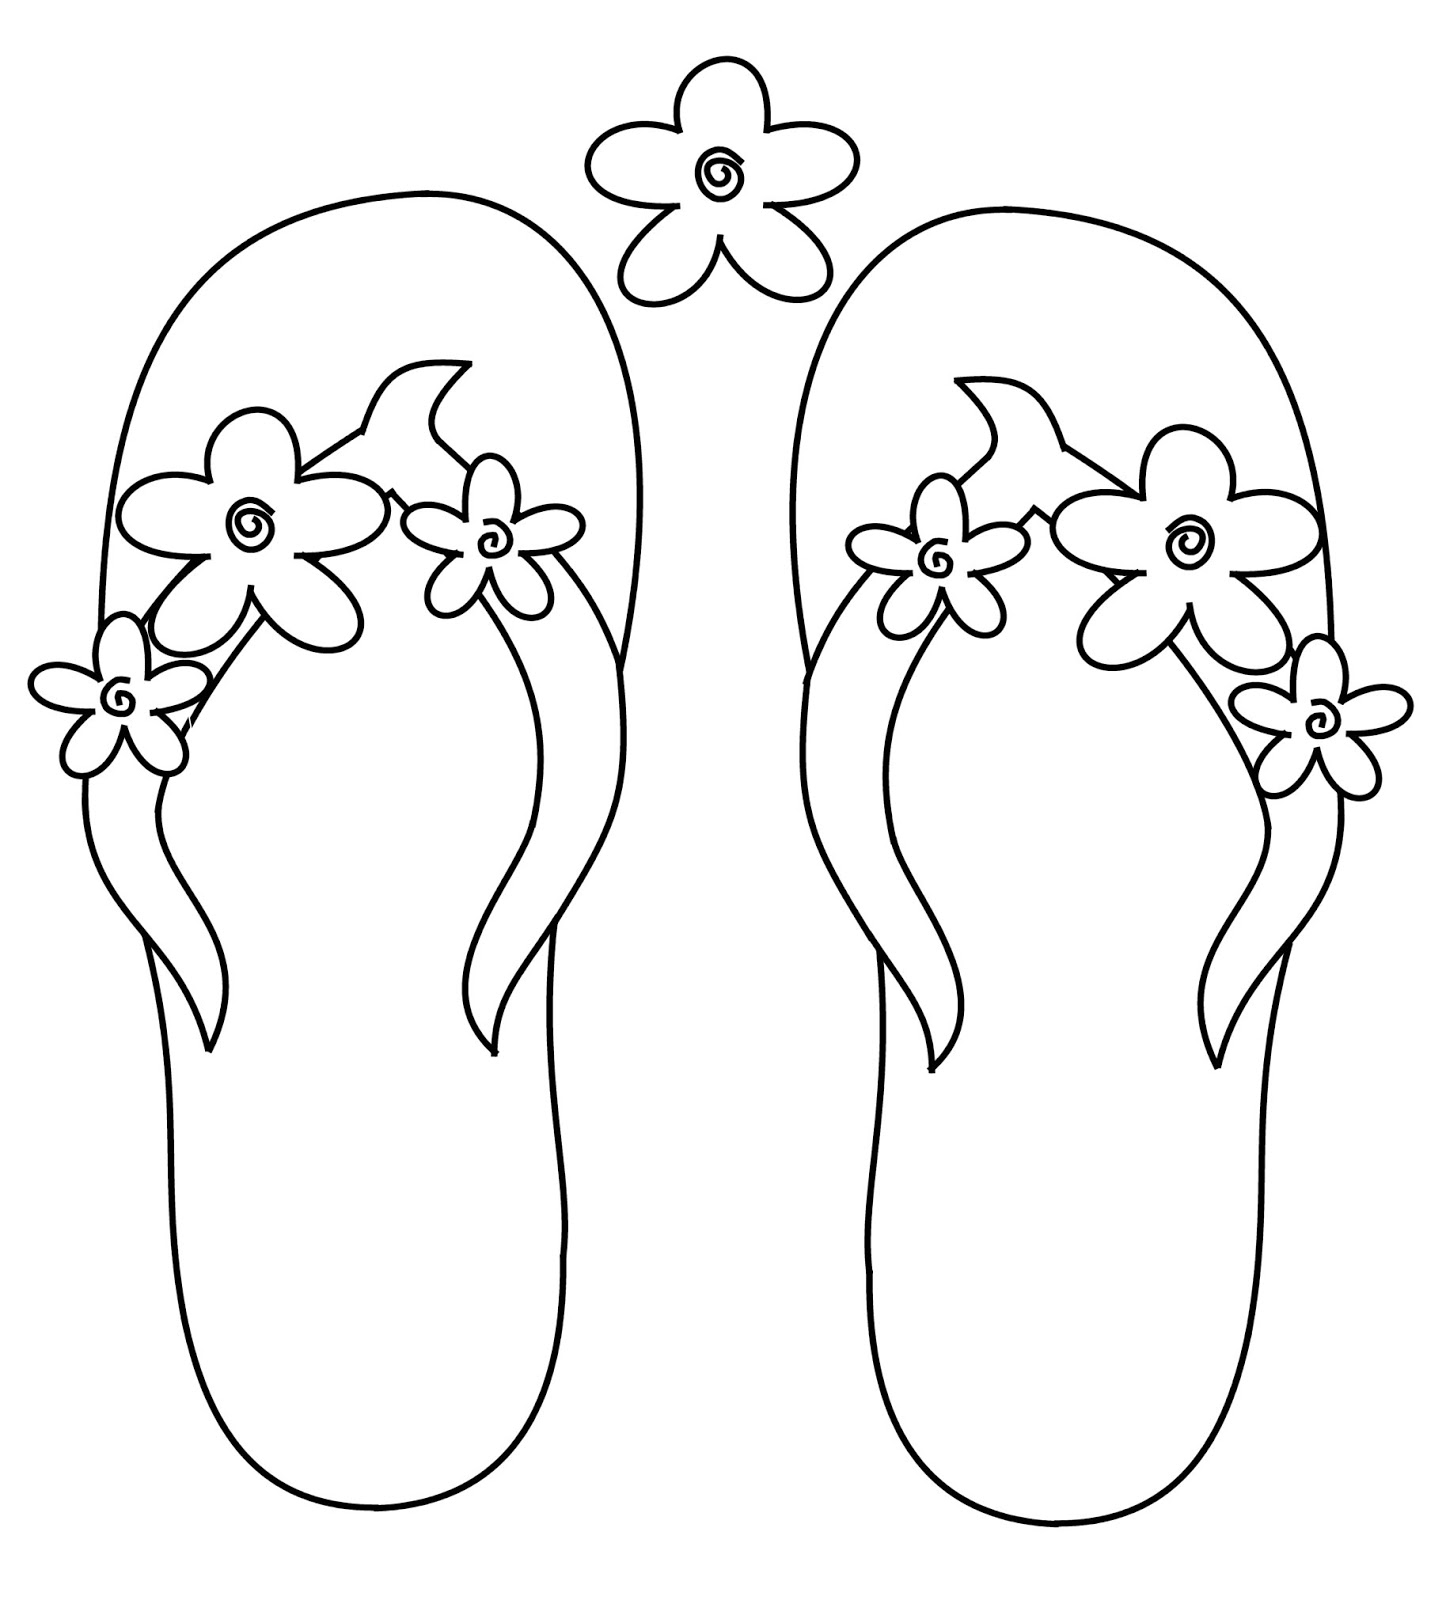 Scribbles Designs Challenge Blog Freebie Friday Flower Flip Flops